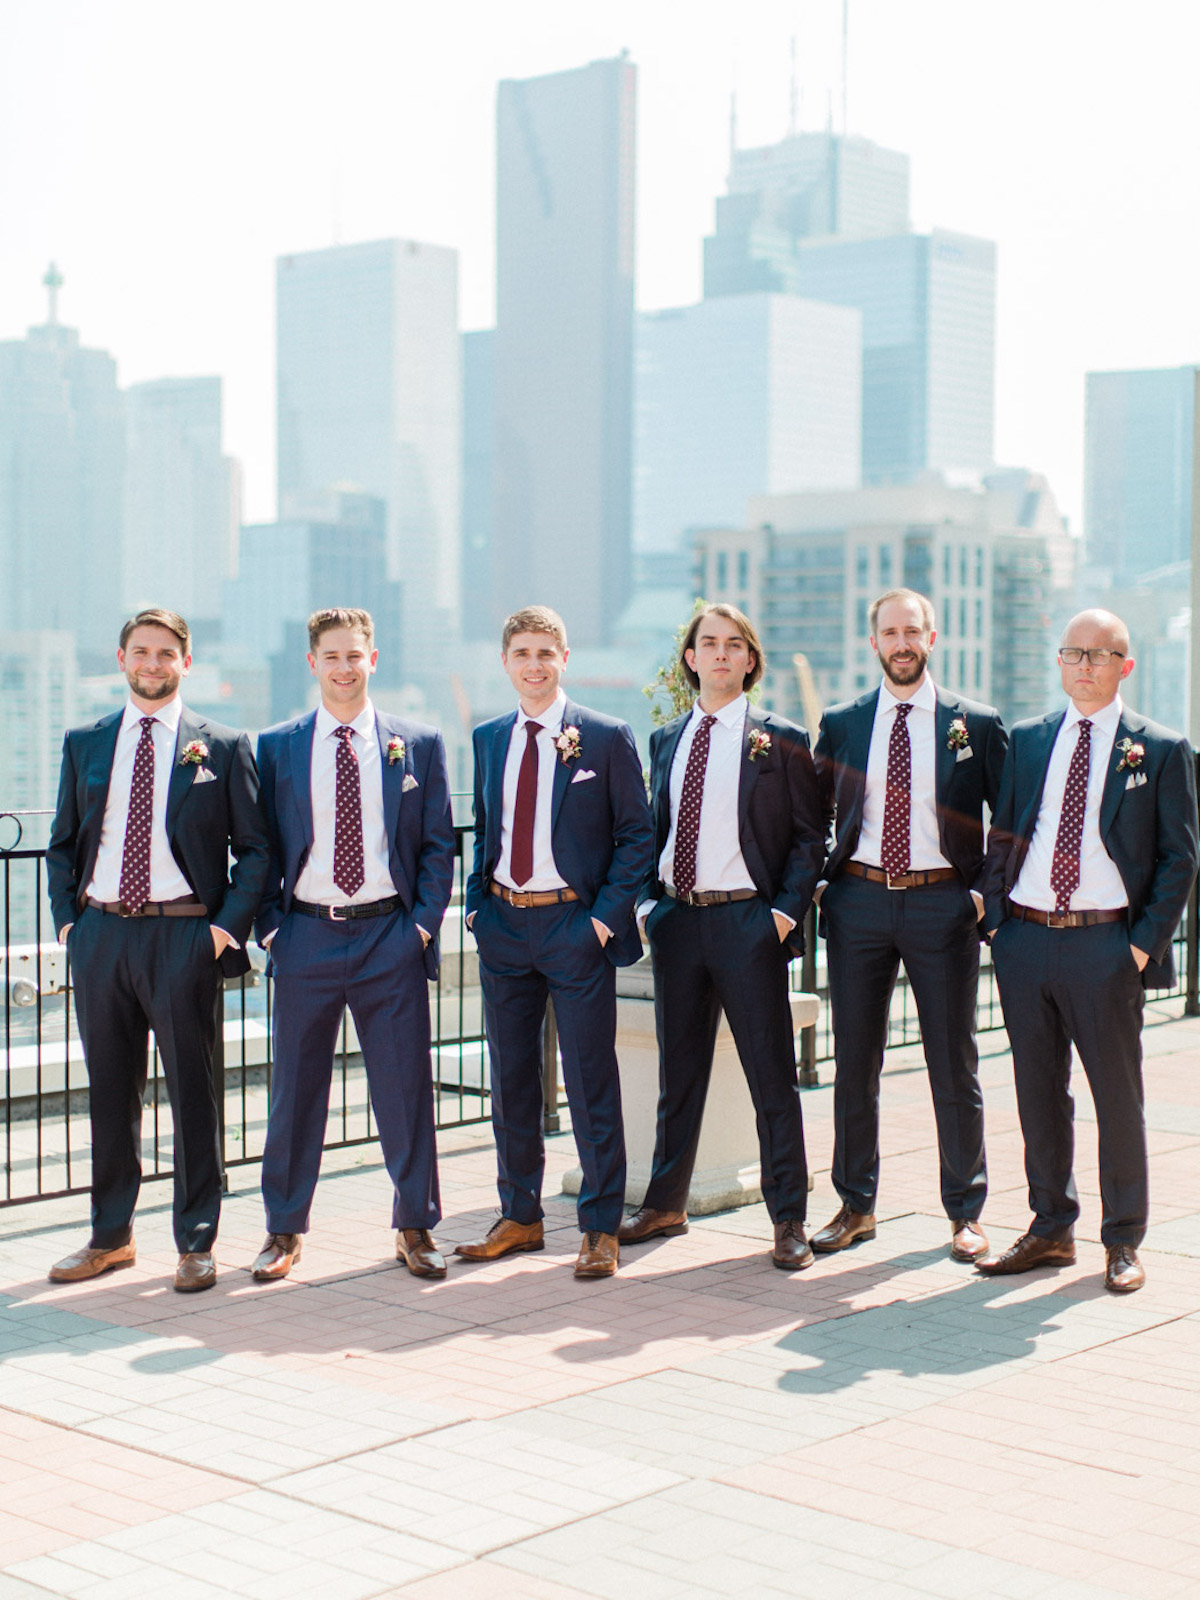 groomsmen in polka dot ties